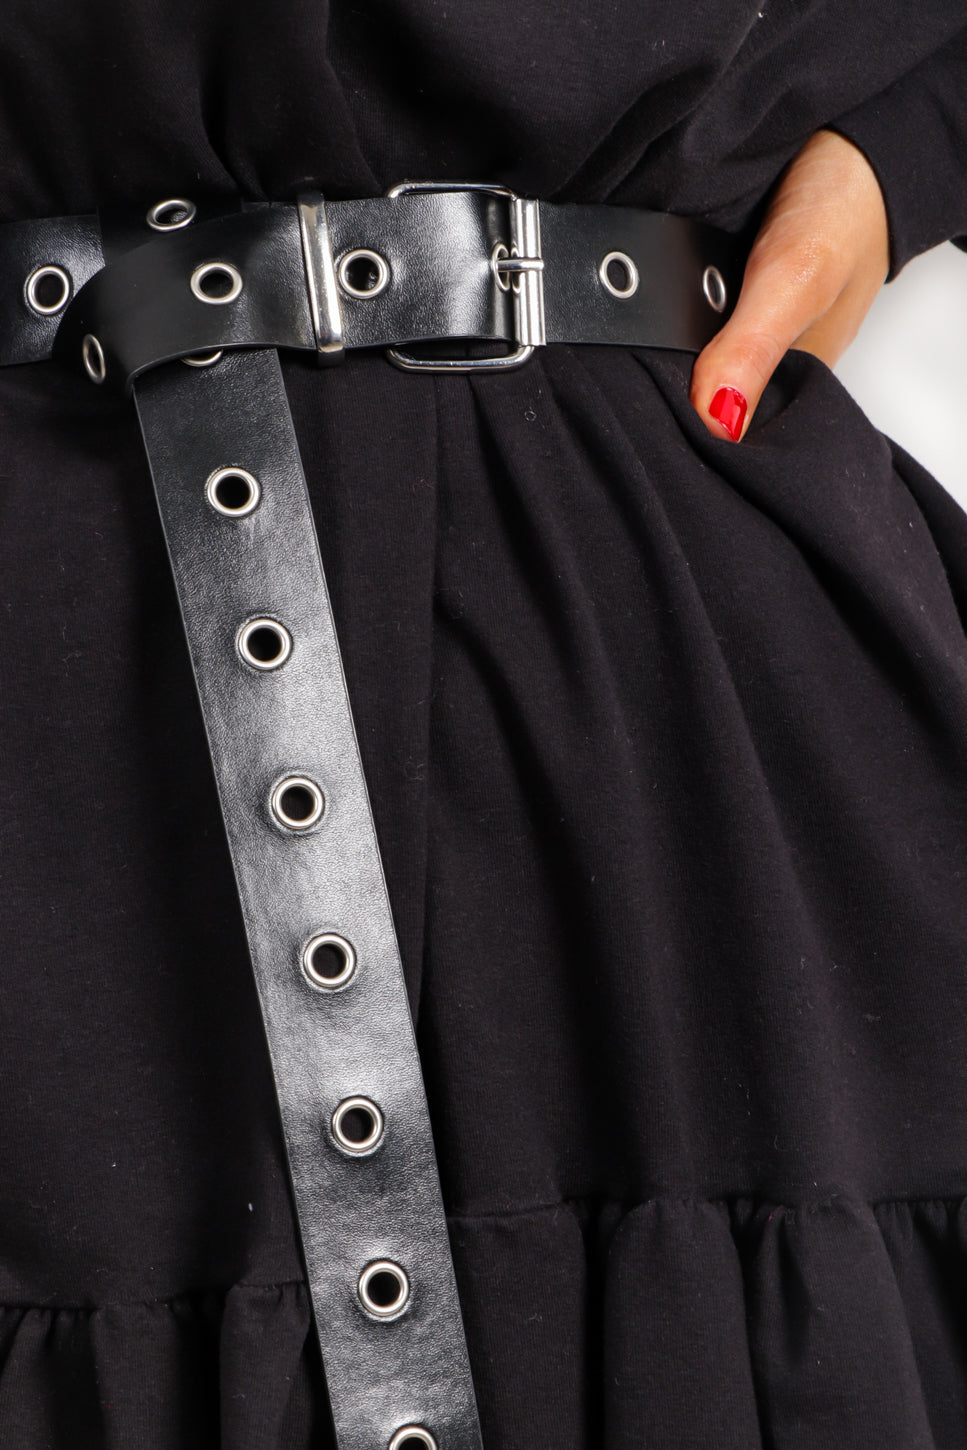 Hole Lot Of Fun - Black Silver Eyelet Belt